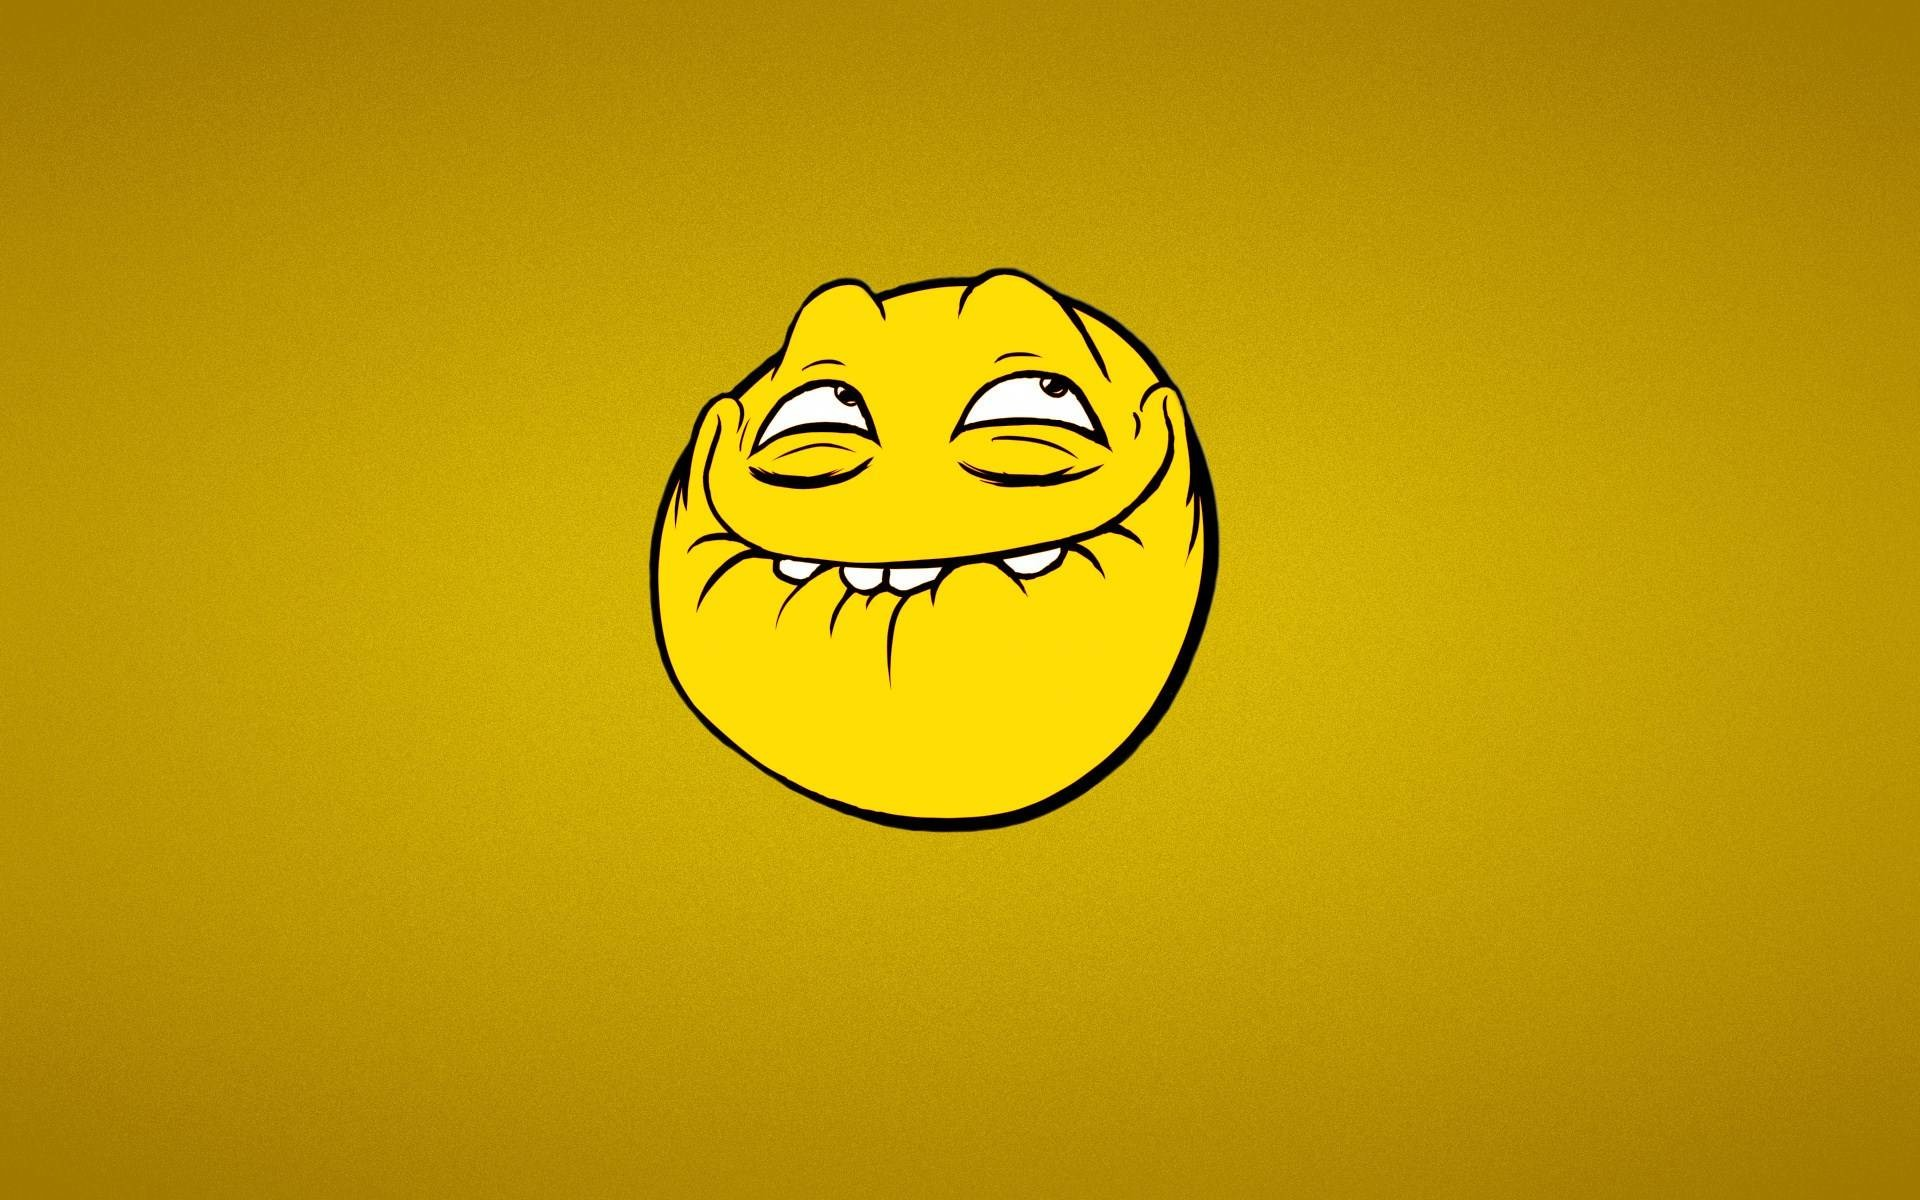 1920x1200 Smile Trollface Yellow Cartoon Wallpaper Desktop #0023 Wallpaper